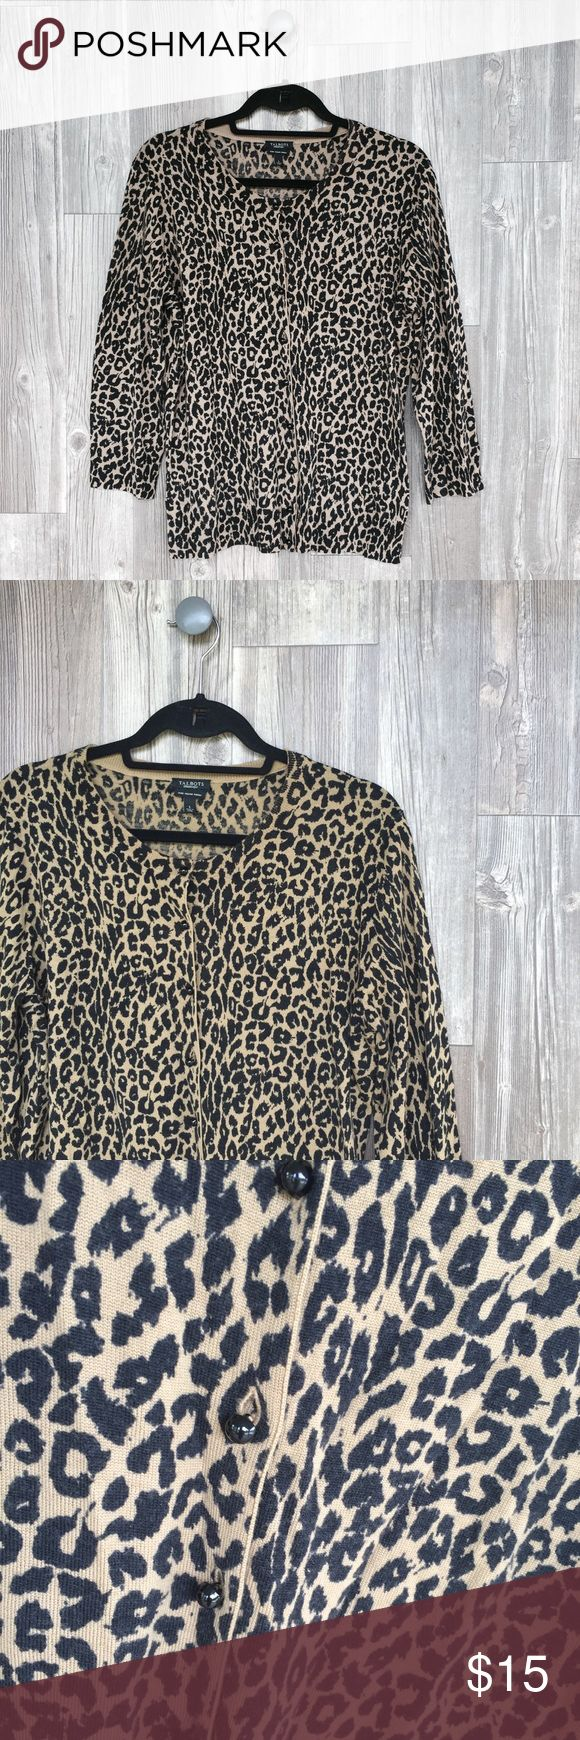 Talbots Cheetah Cardigan Talbots Cheetah Cardigan. Size Large! Perfect condition. Talbots Sweaters Cardigans